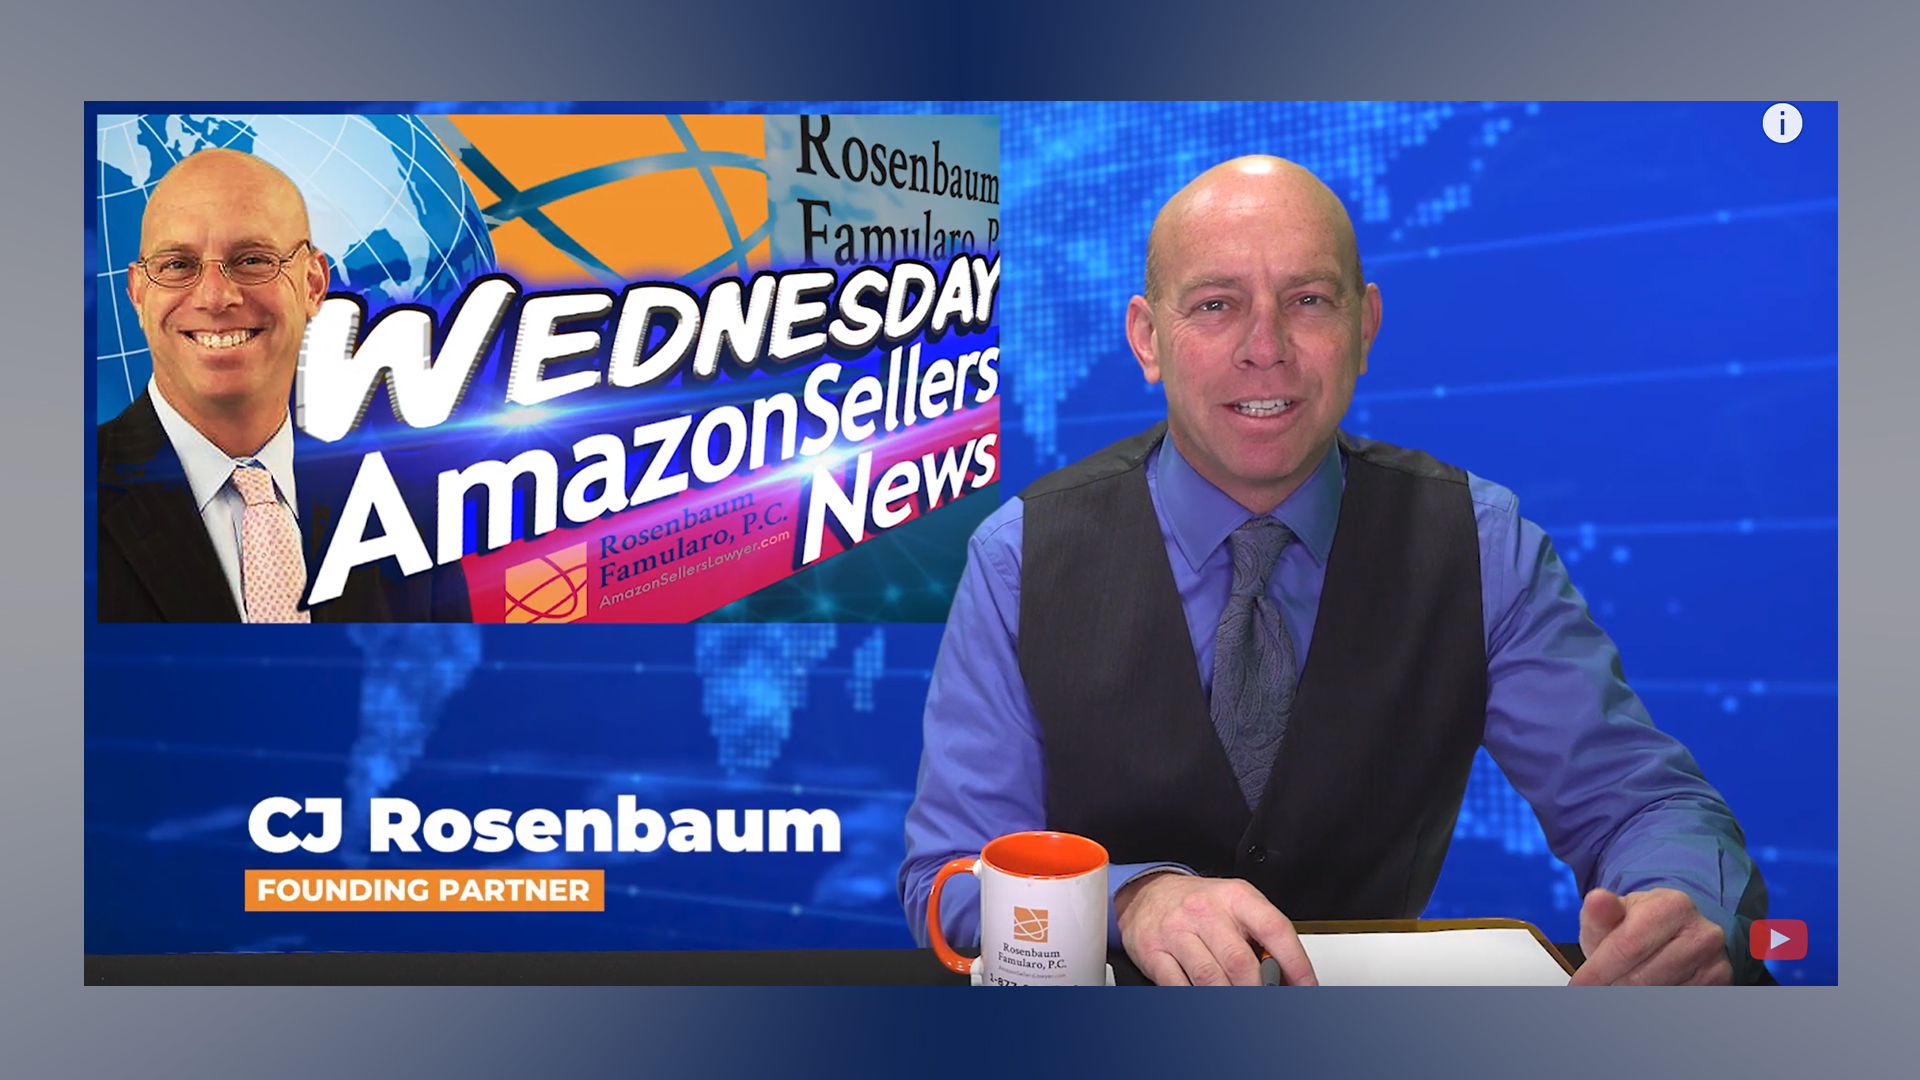 Amazon Seller Business Verifications, New TOS & Developing a SIX FIGURE Private Label Brand